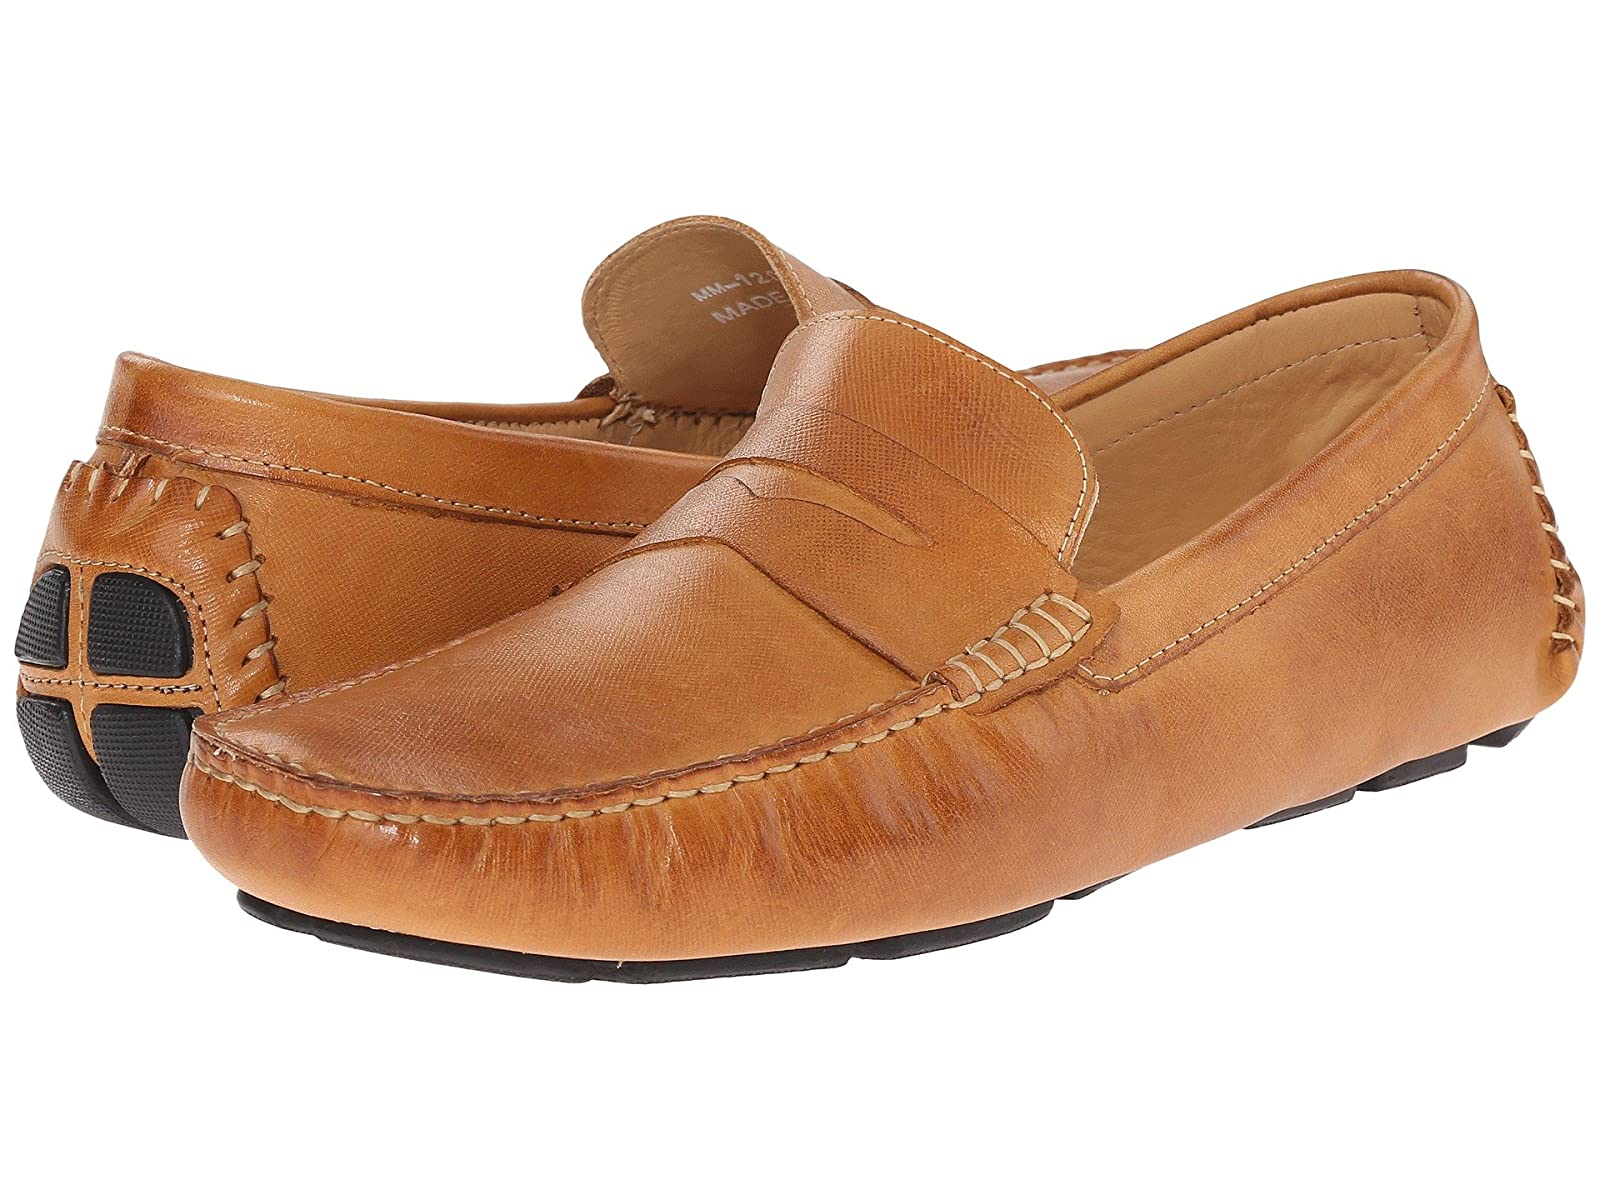 Massimo Matteo Saffiano Penny MocAtmospheric grades have affordable shoes